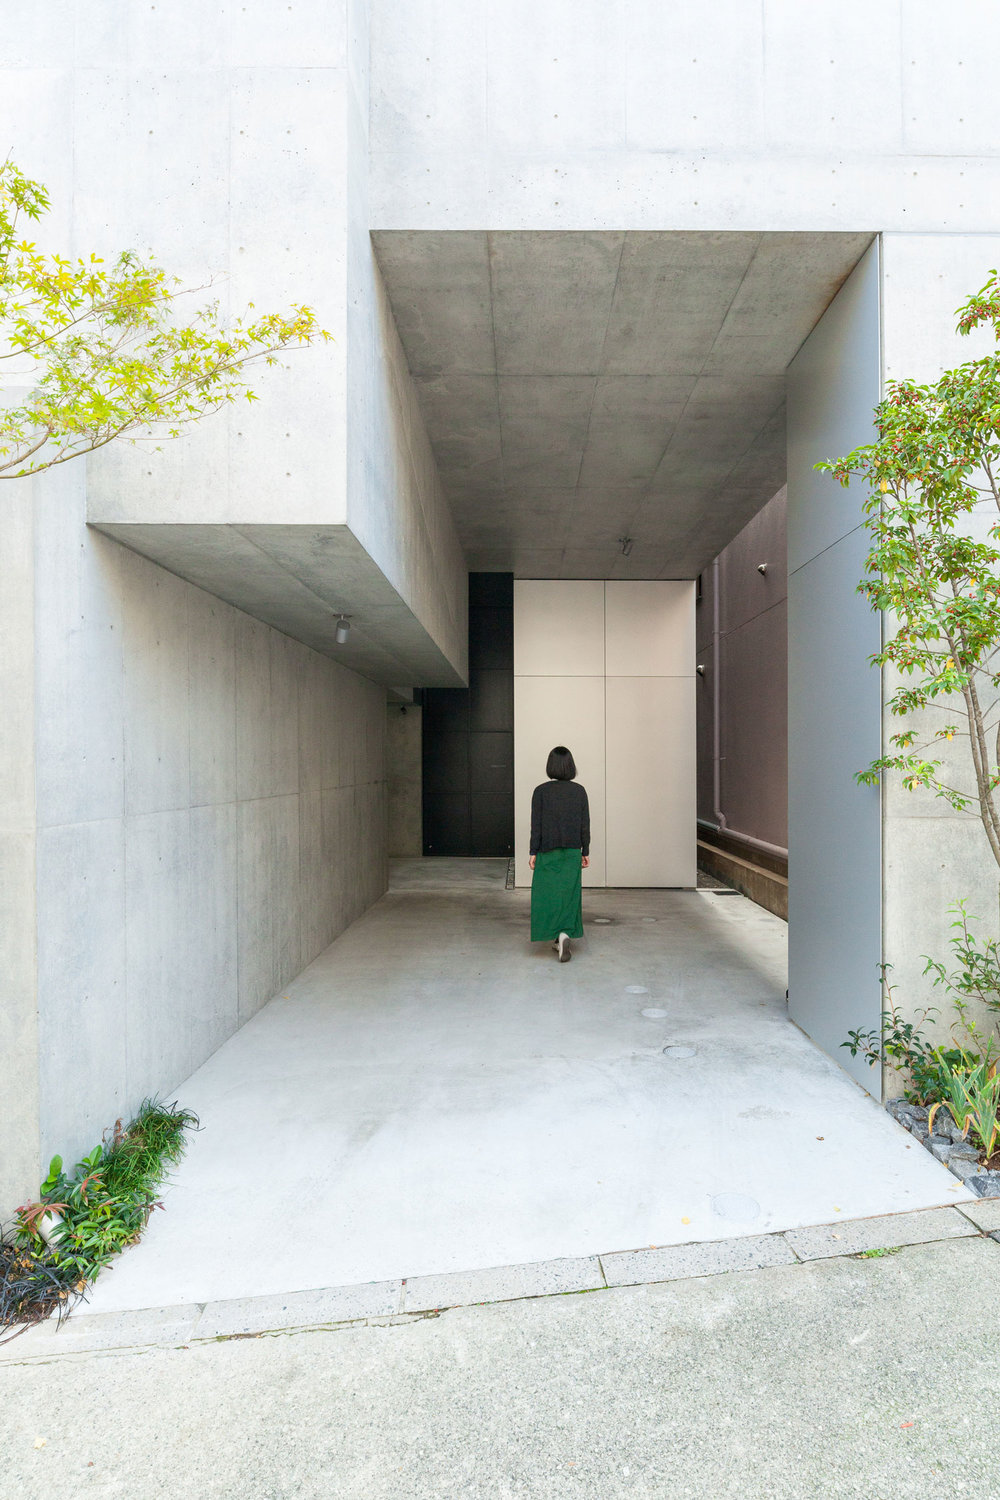 Tree-ness-House-Toshima-Japan-by-Akihisa-Hirata-Yellowtrace-06.jpg